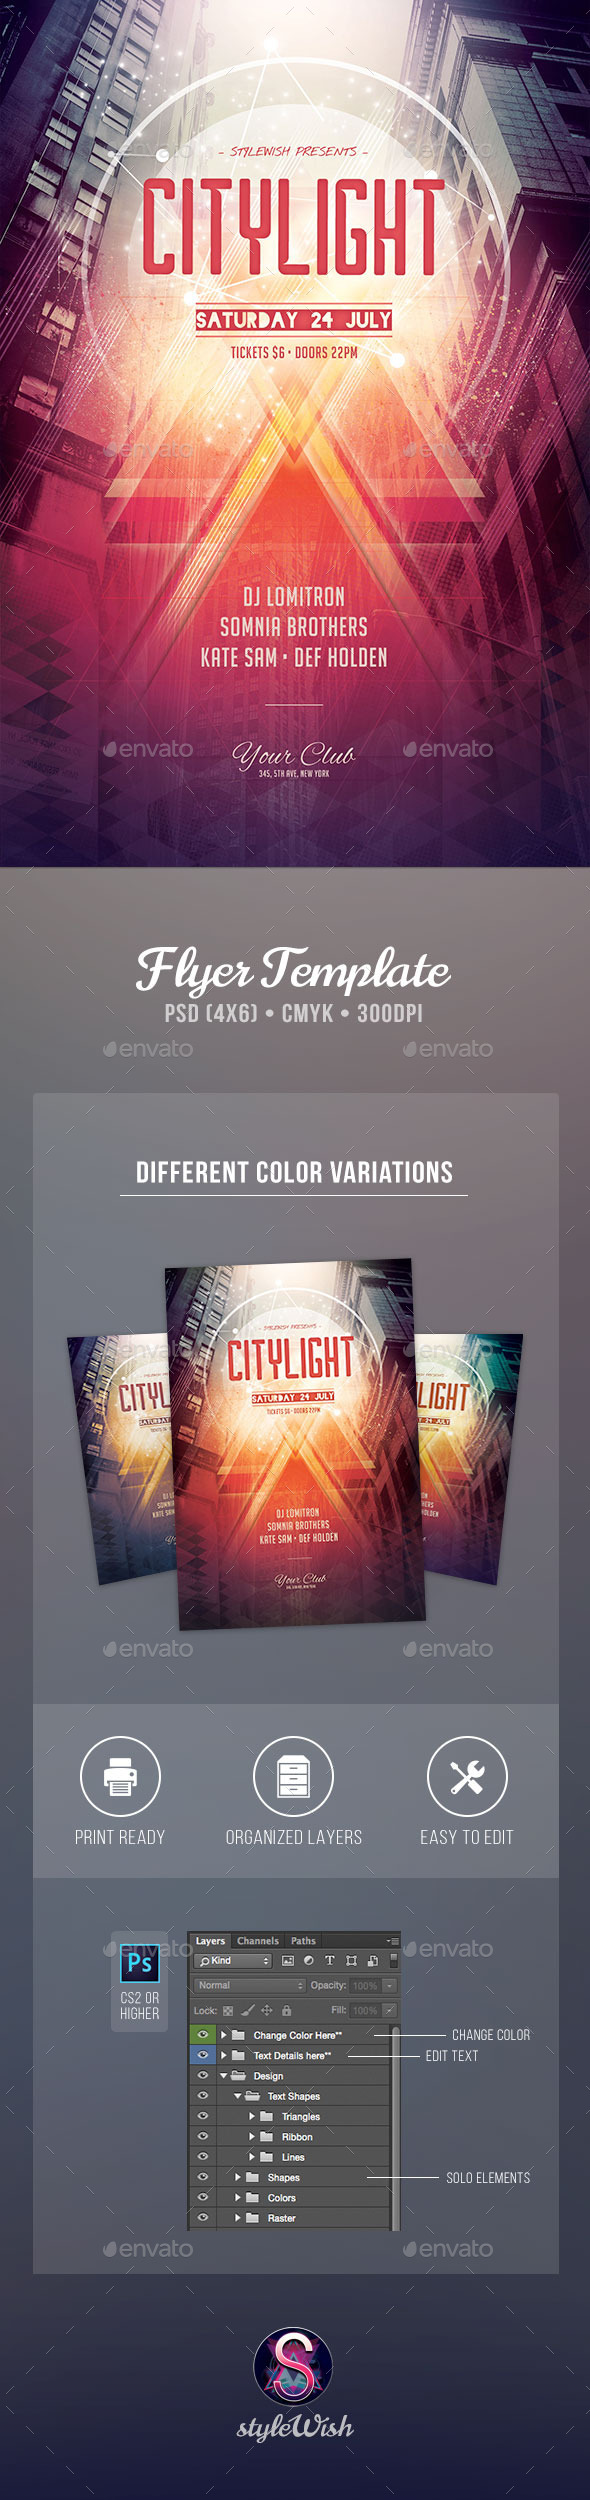 City Light Flyer - Clubs & Parties Events